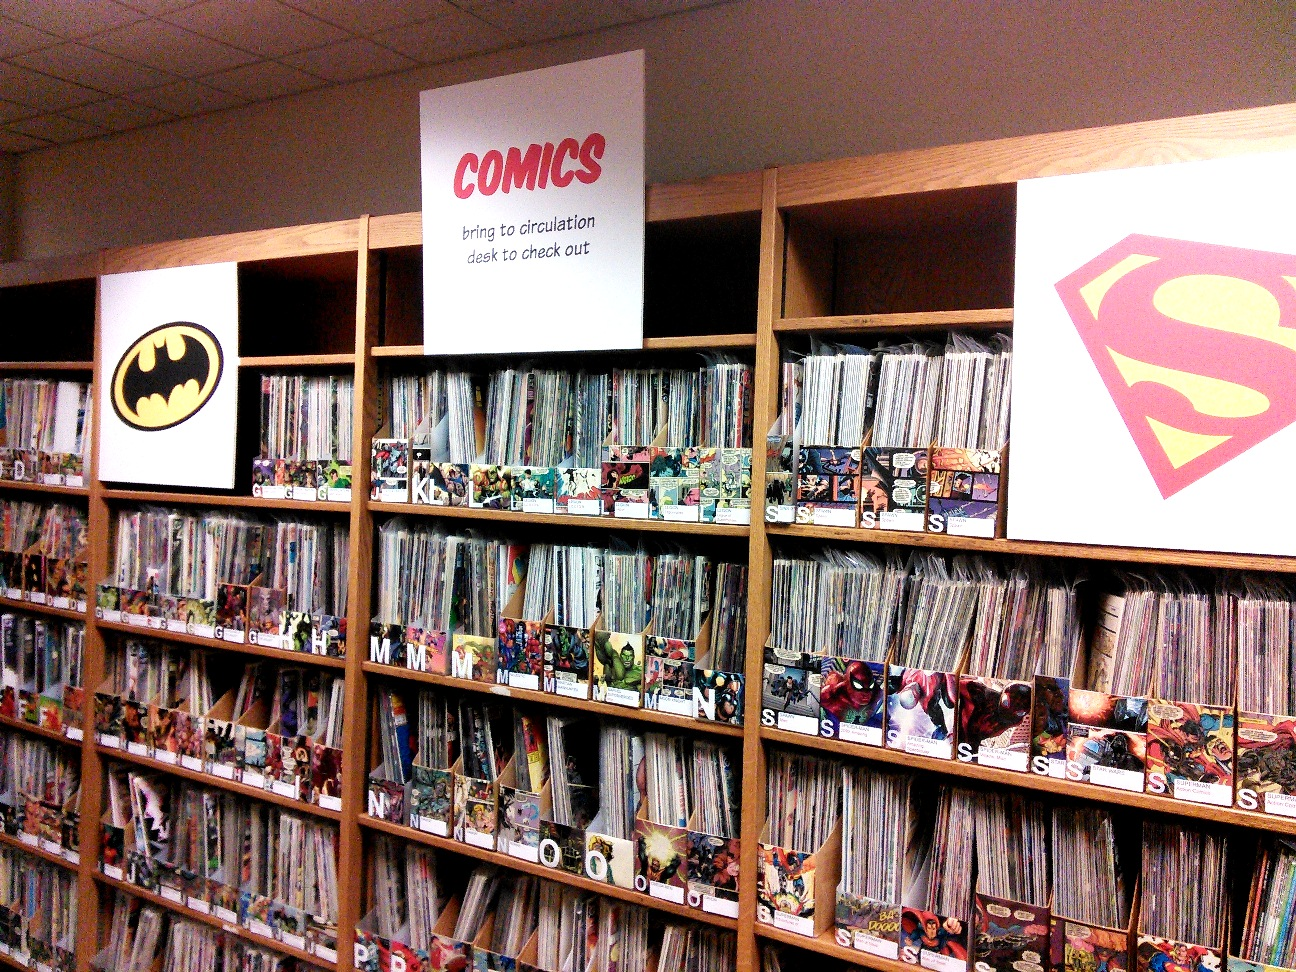 A picture of where the comic books are stored in the lounge